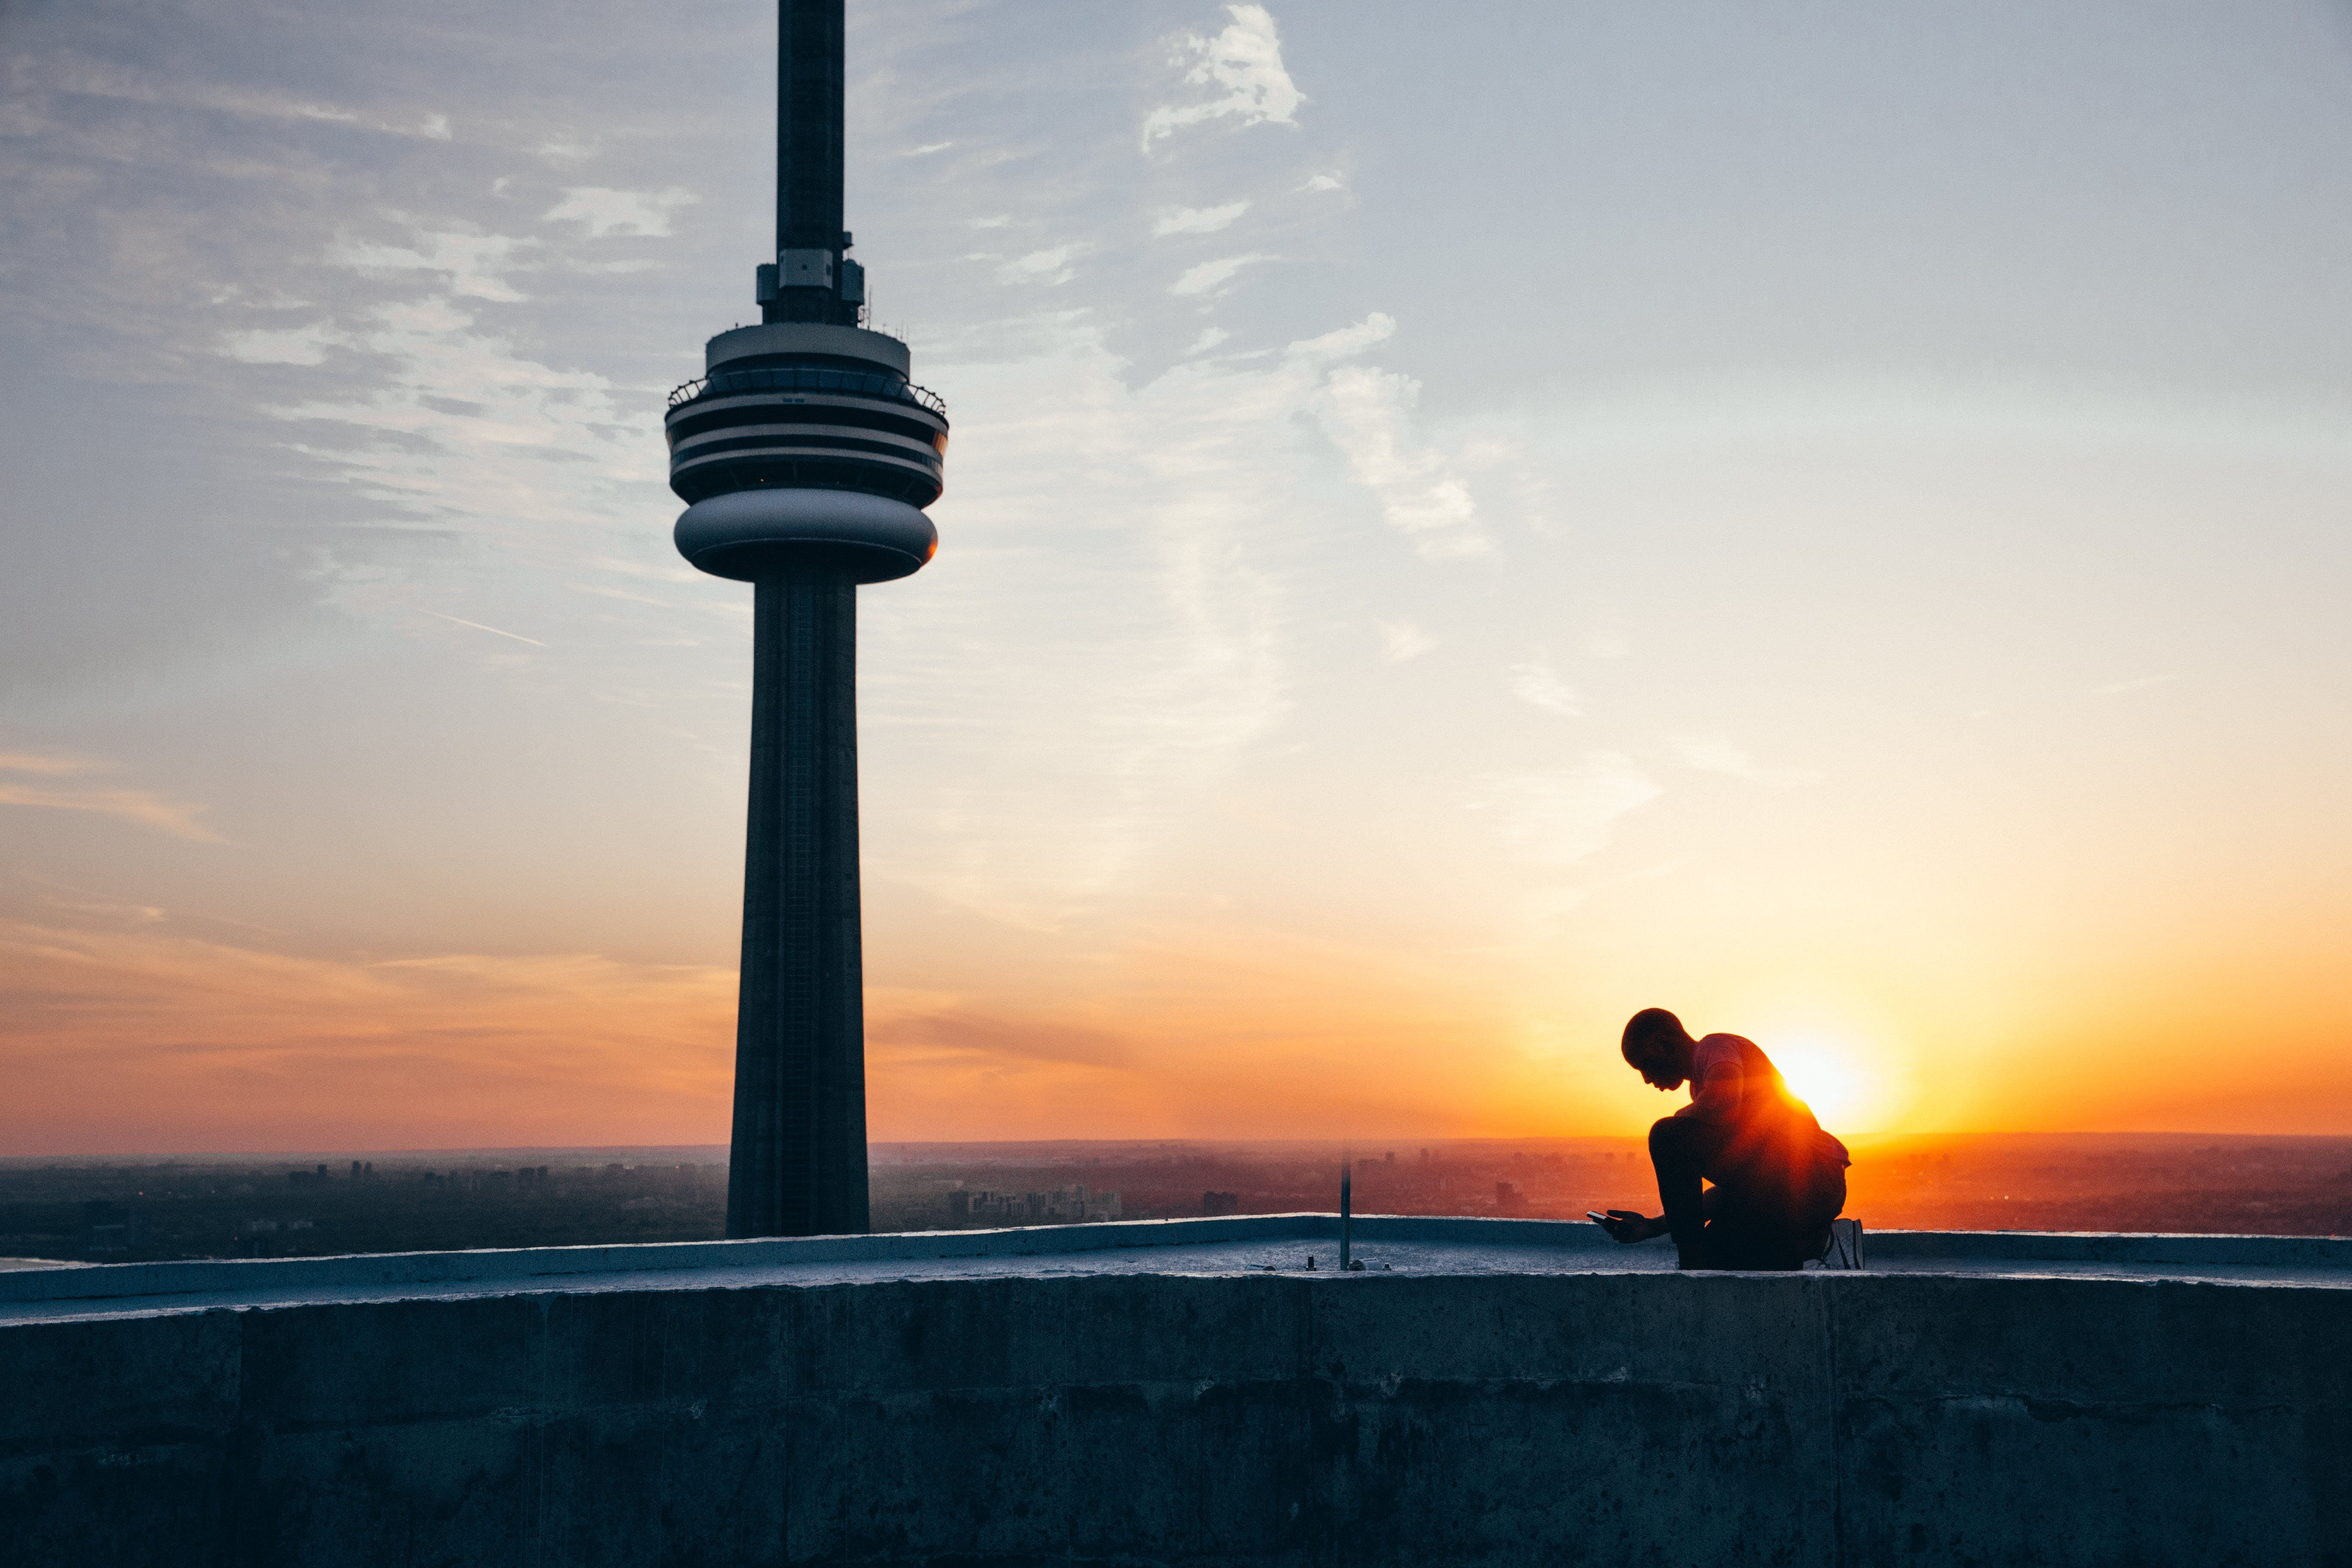 Silhouette of a Man Sitting Near Black Tower Near Body of Water during Sunset